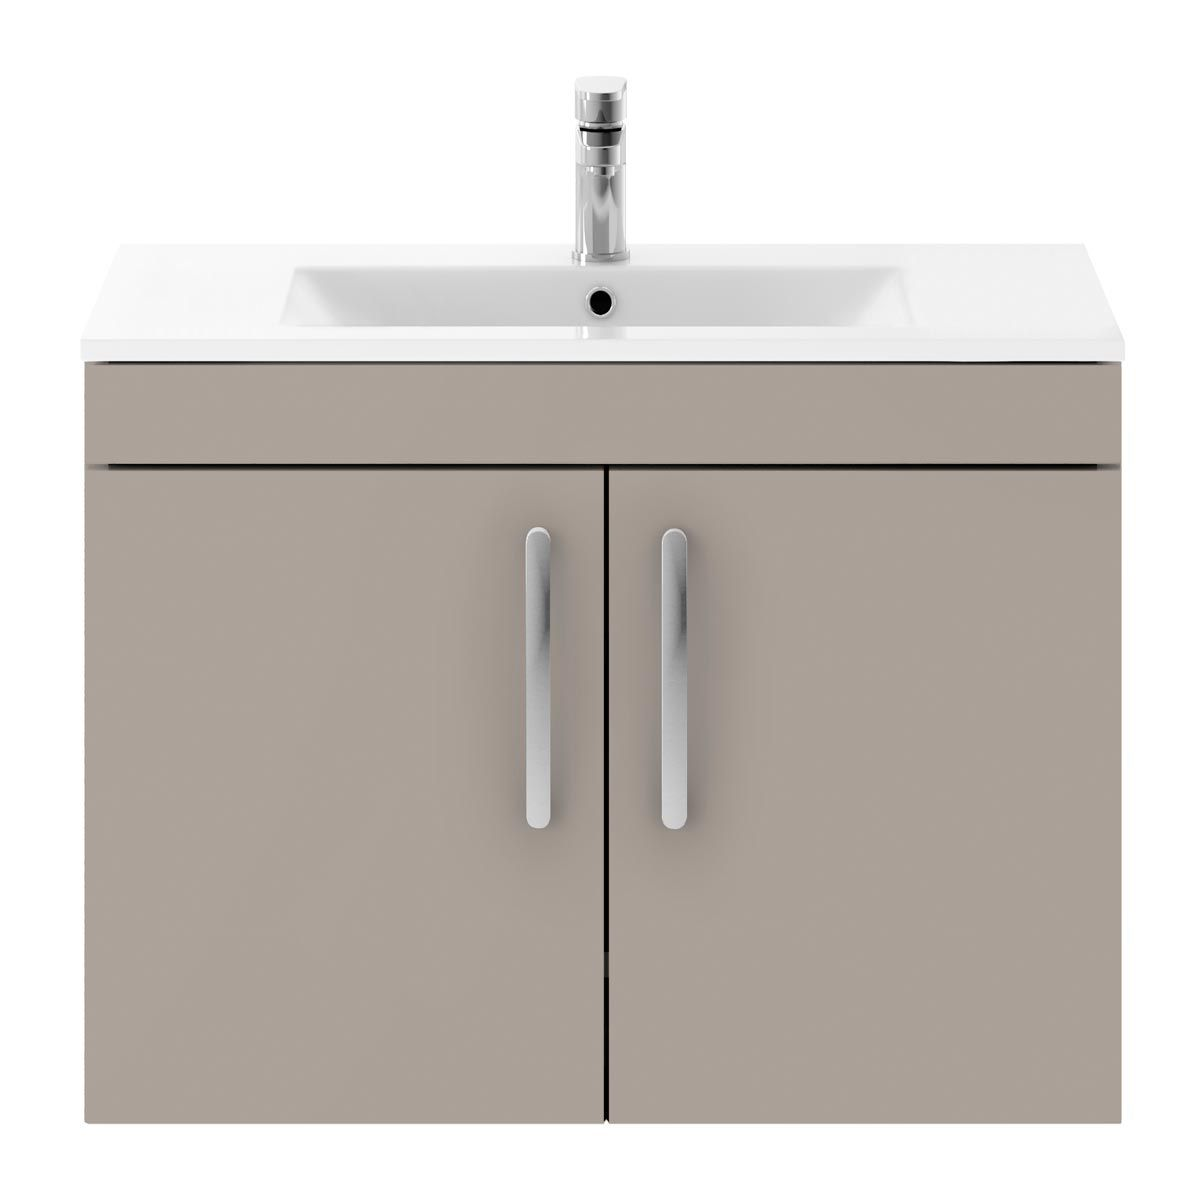 Nuie Athena Stone Grey 2 Door Wall Hung Vanity Unit with 18mm Profile Basin 800mm